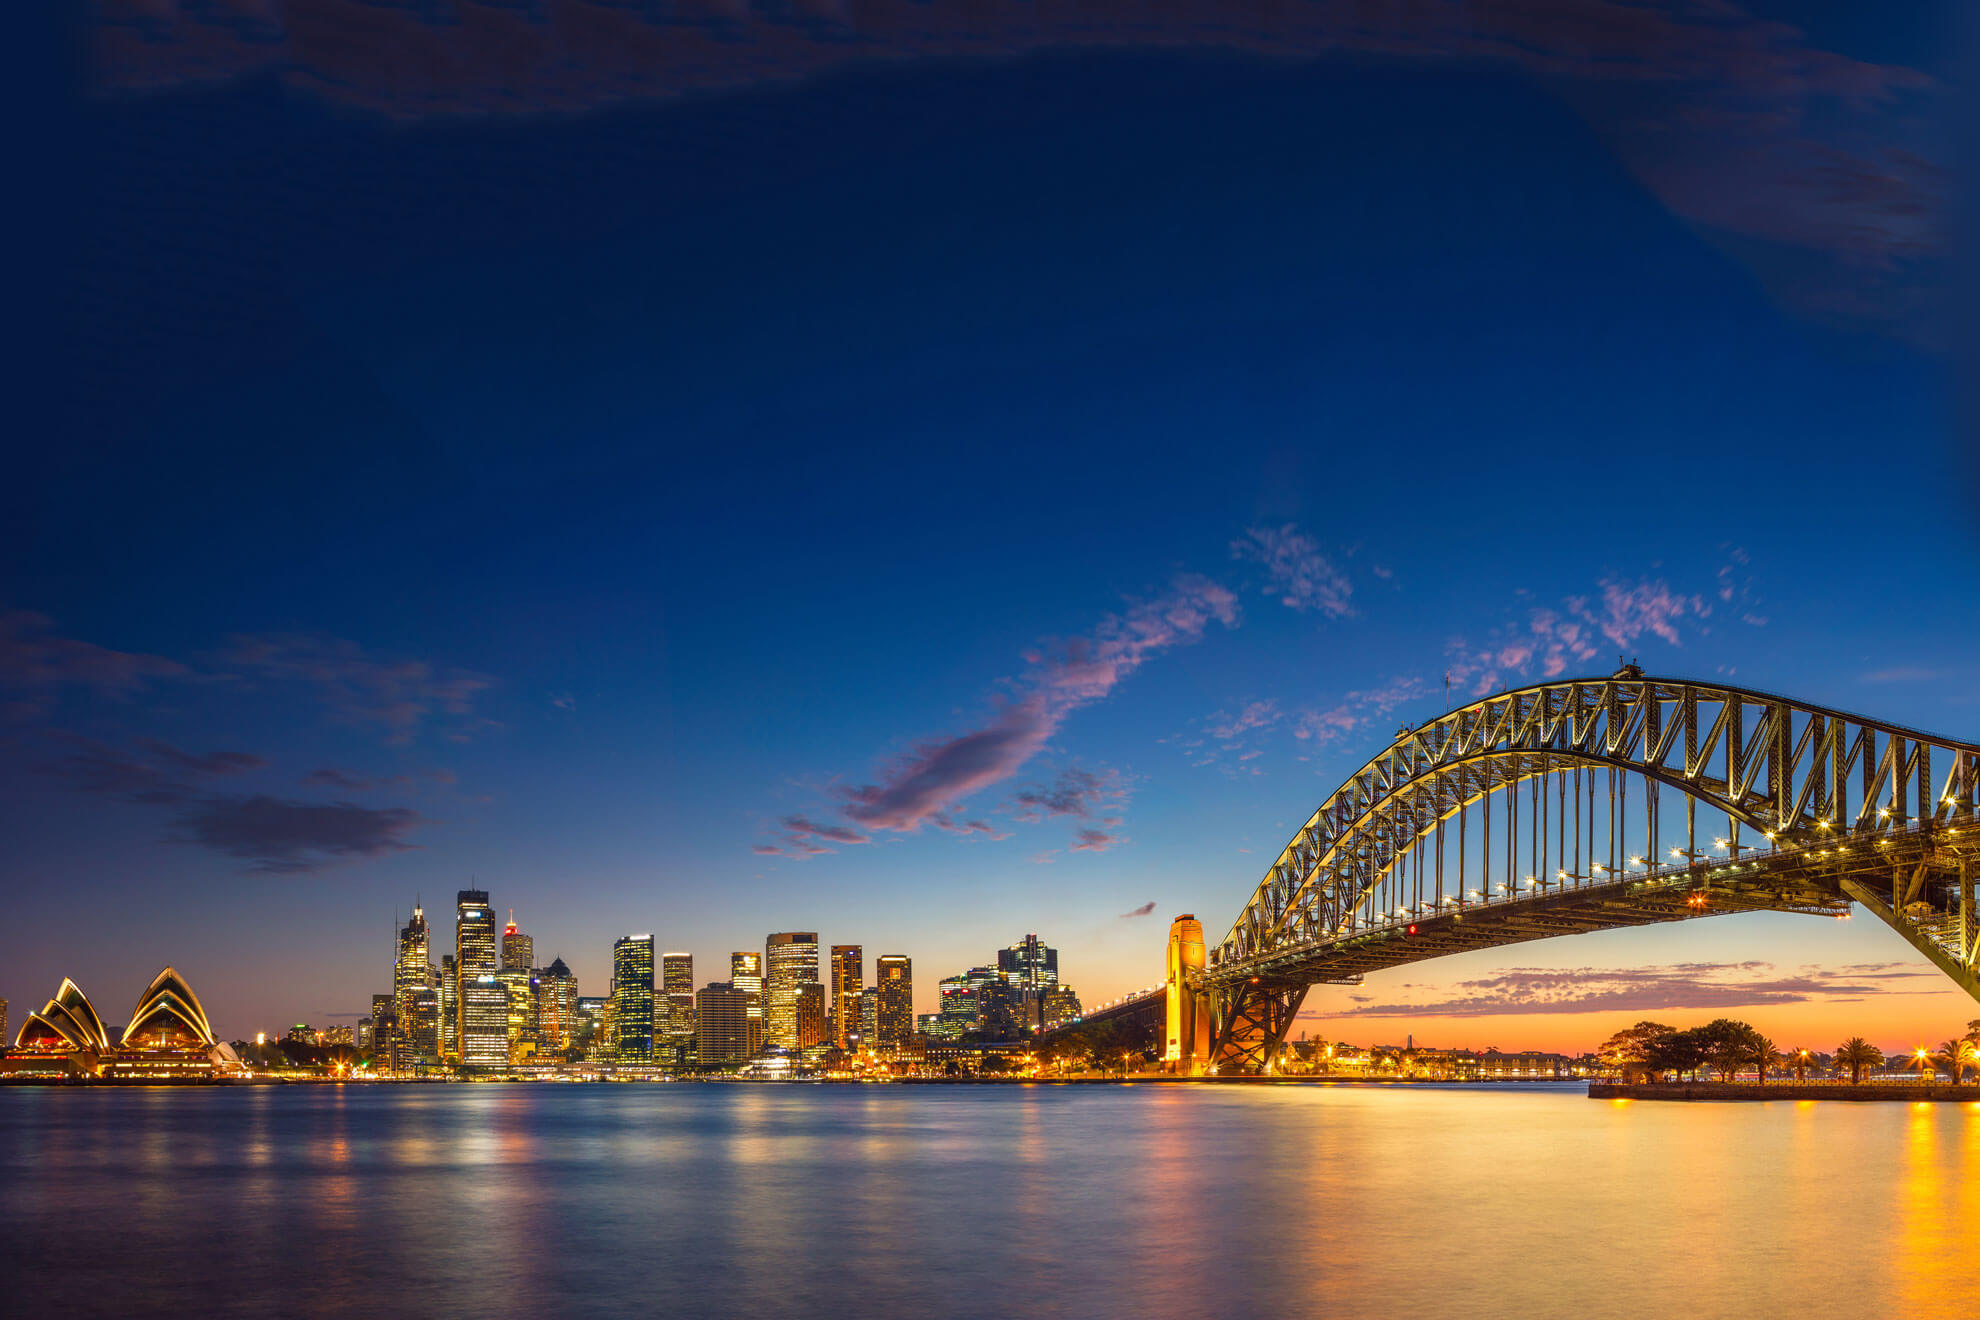 The Awe-inspiring cities of Australia